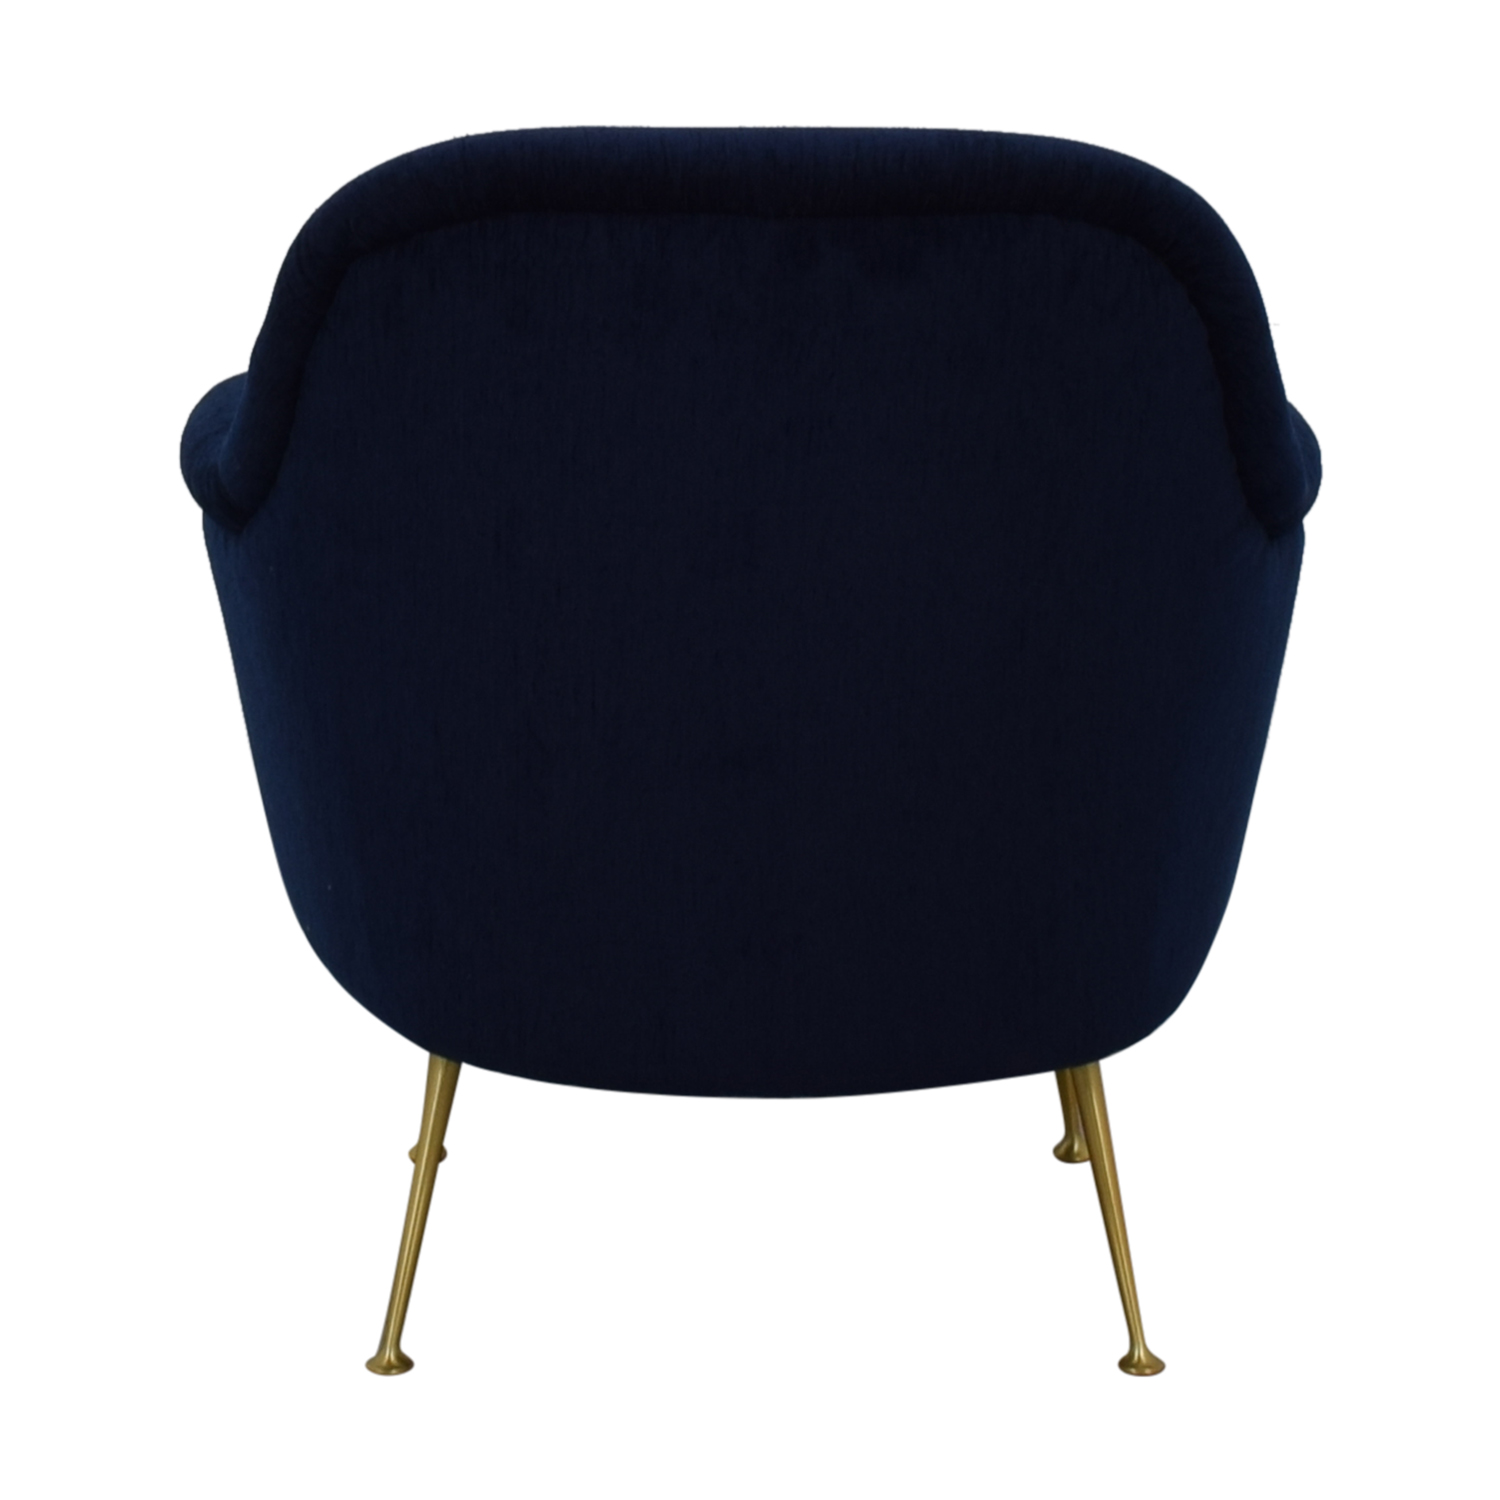 West Elm West Elm Phoebe Chair price